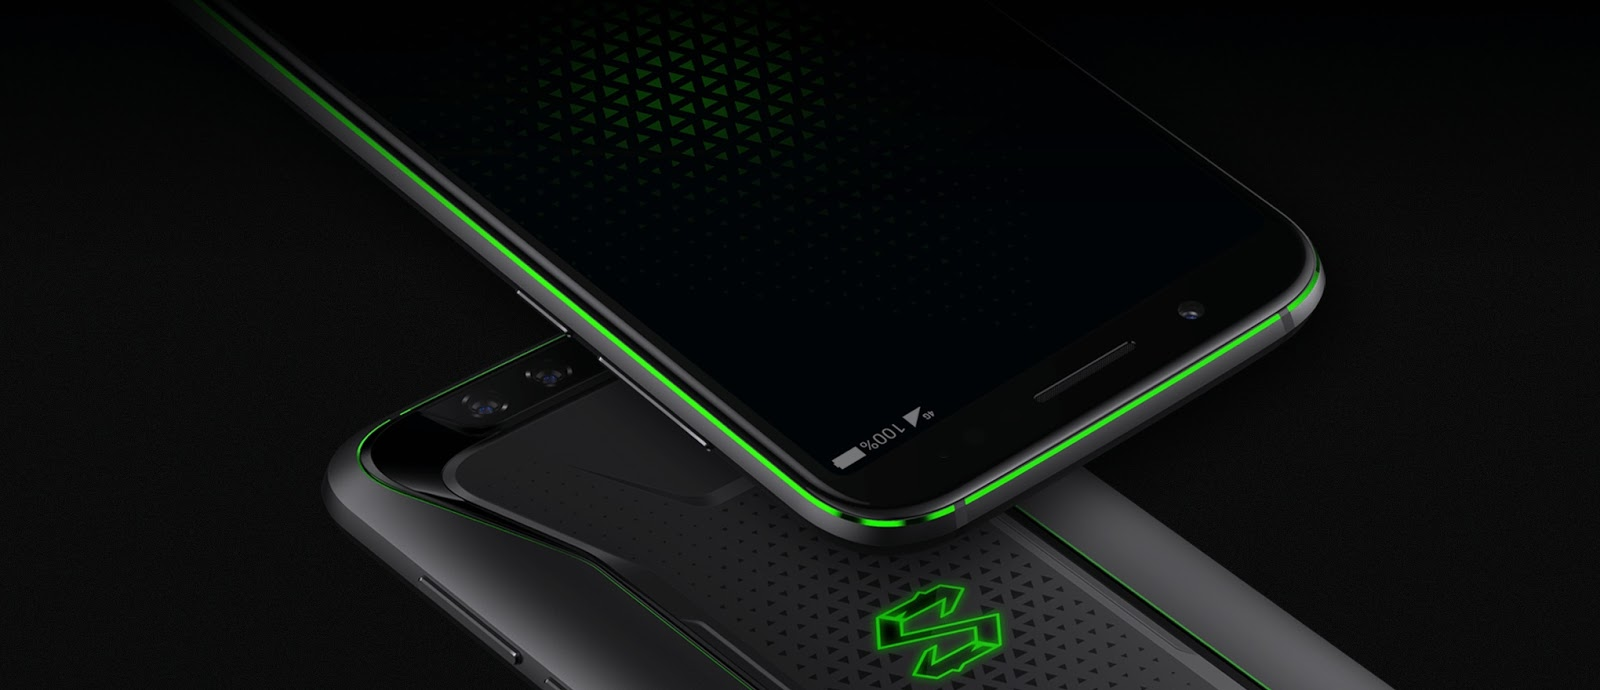 Xiaomi Announces 'Black Shark' Gaming Phone With Snapdragon 845, 8GB RAM And More